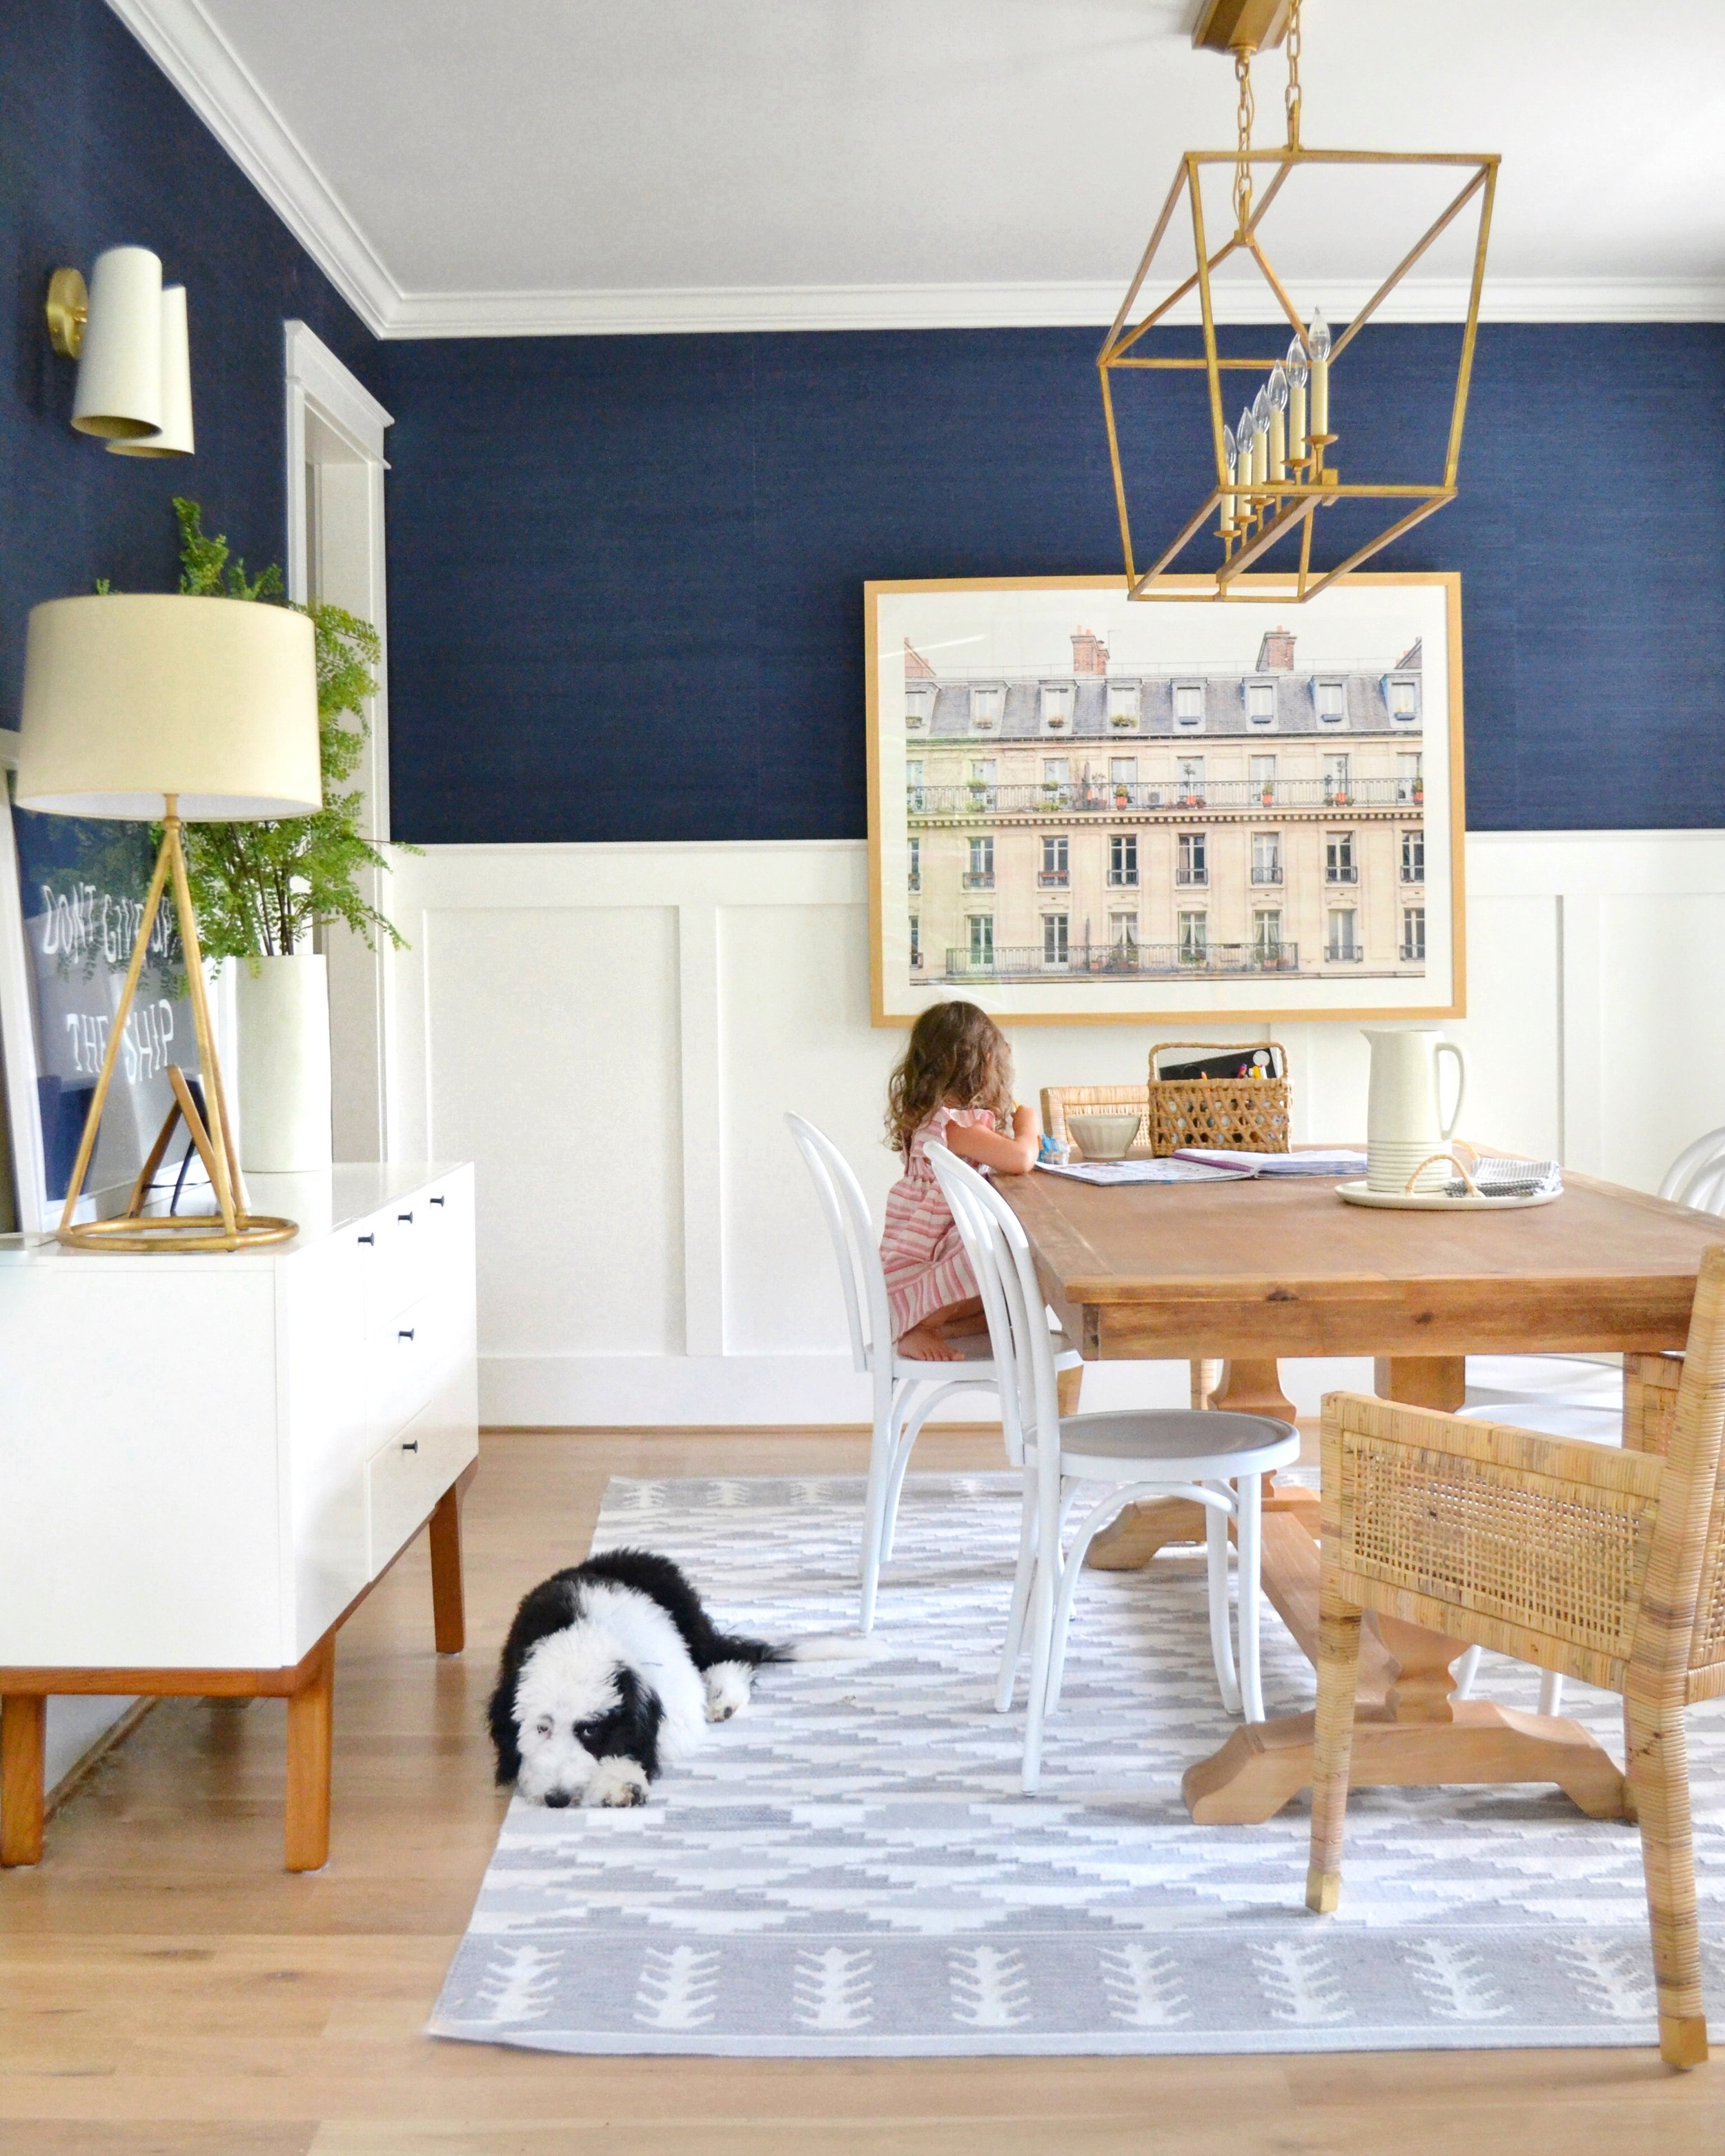 Paint Colors in My Home, Chrissy Marie Blog